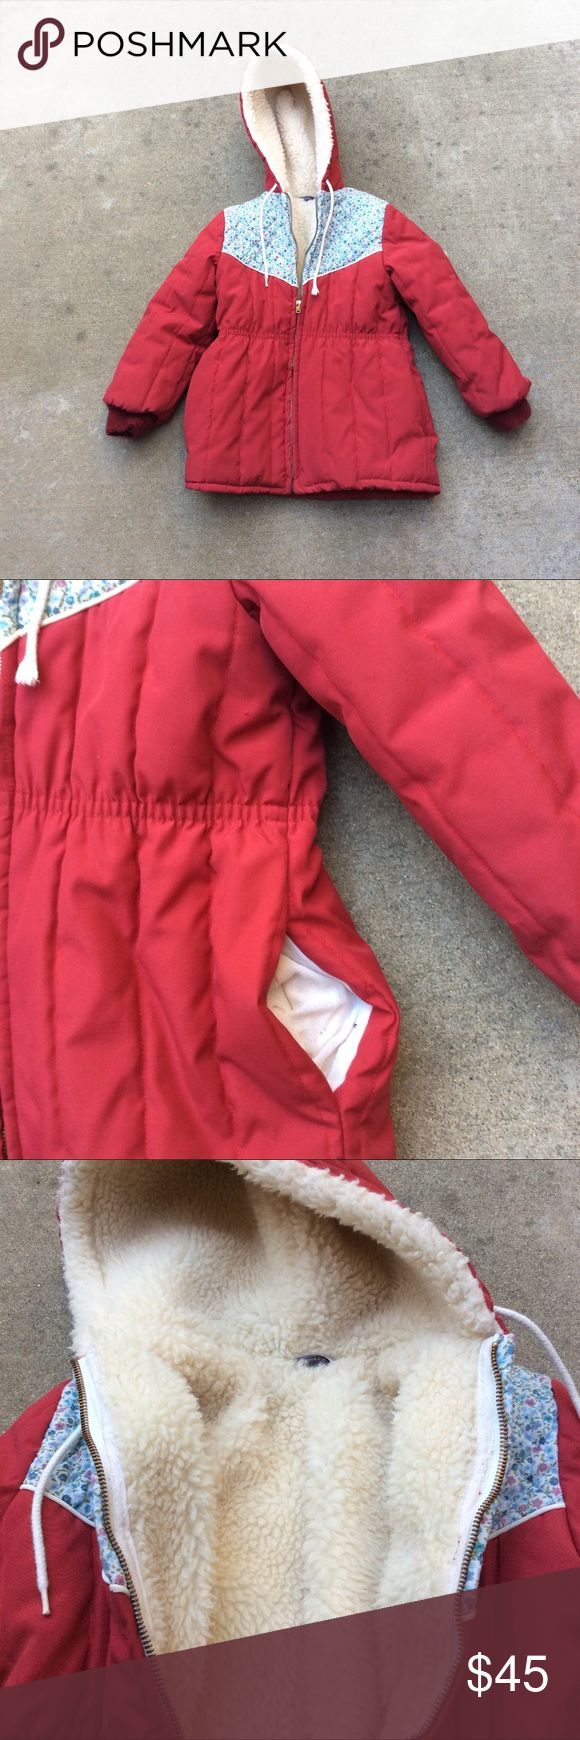 Girls vintage fleece lined coat Vintage 80s girls red quilted FLEECE lined coat BLUE floral w/ hood Tag size 6X 6 EUC. 2 side pockets. Jackets & Coats